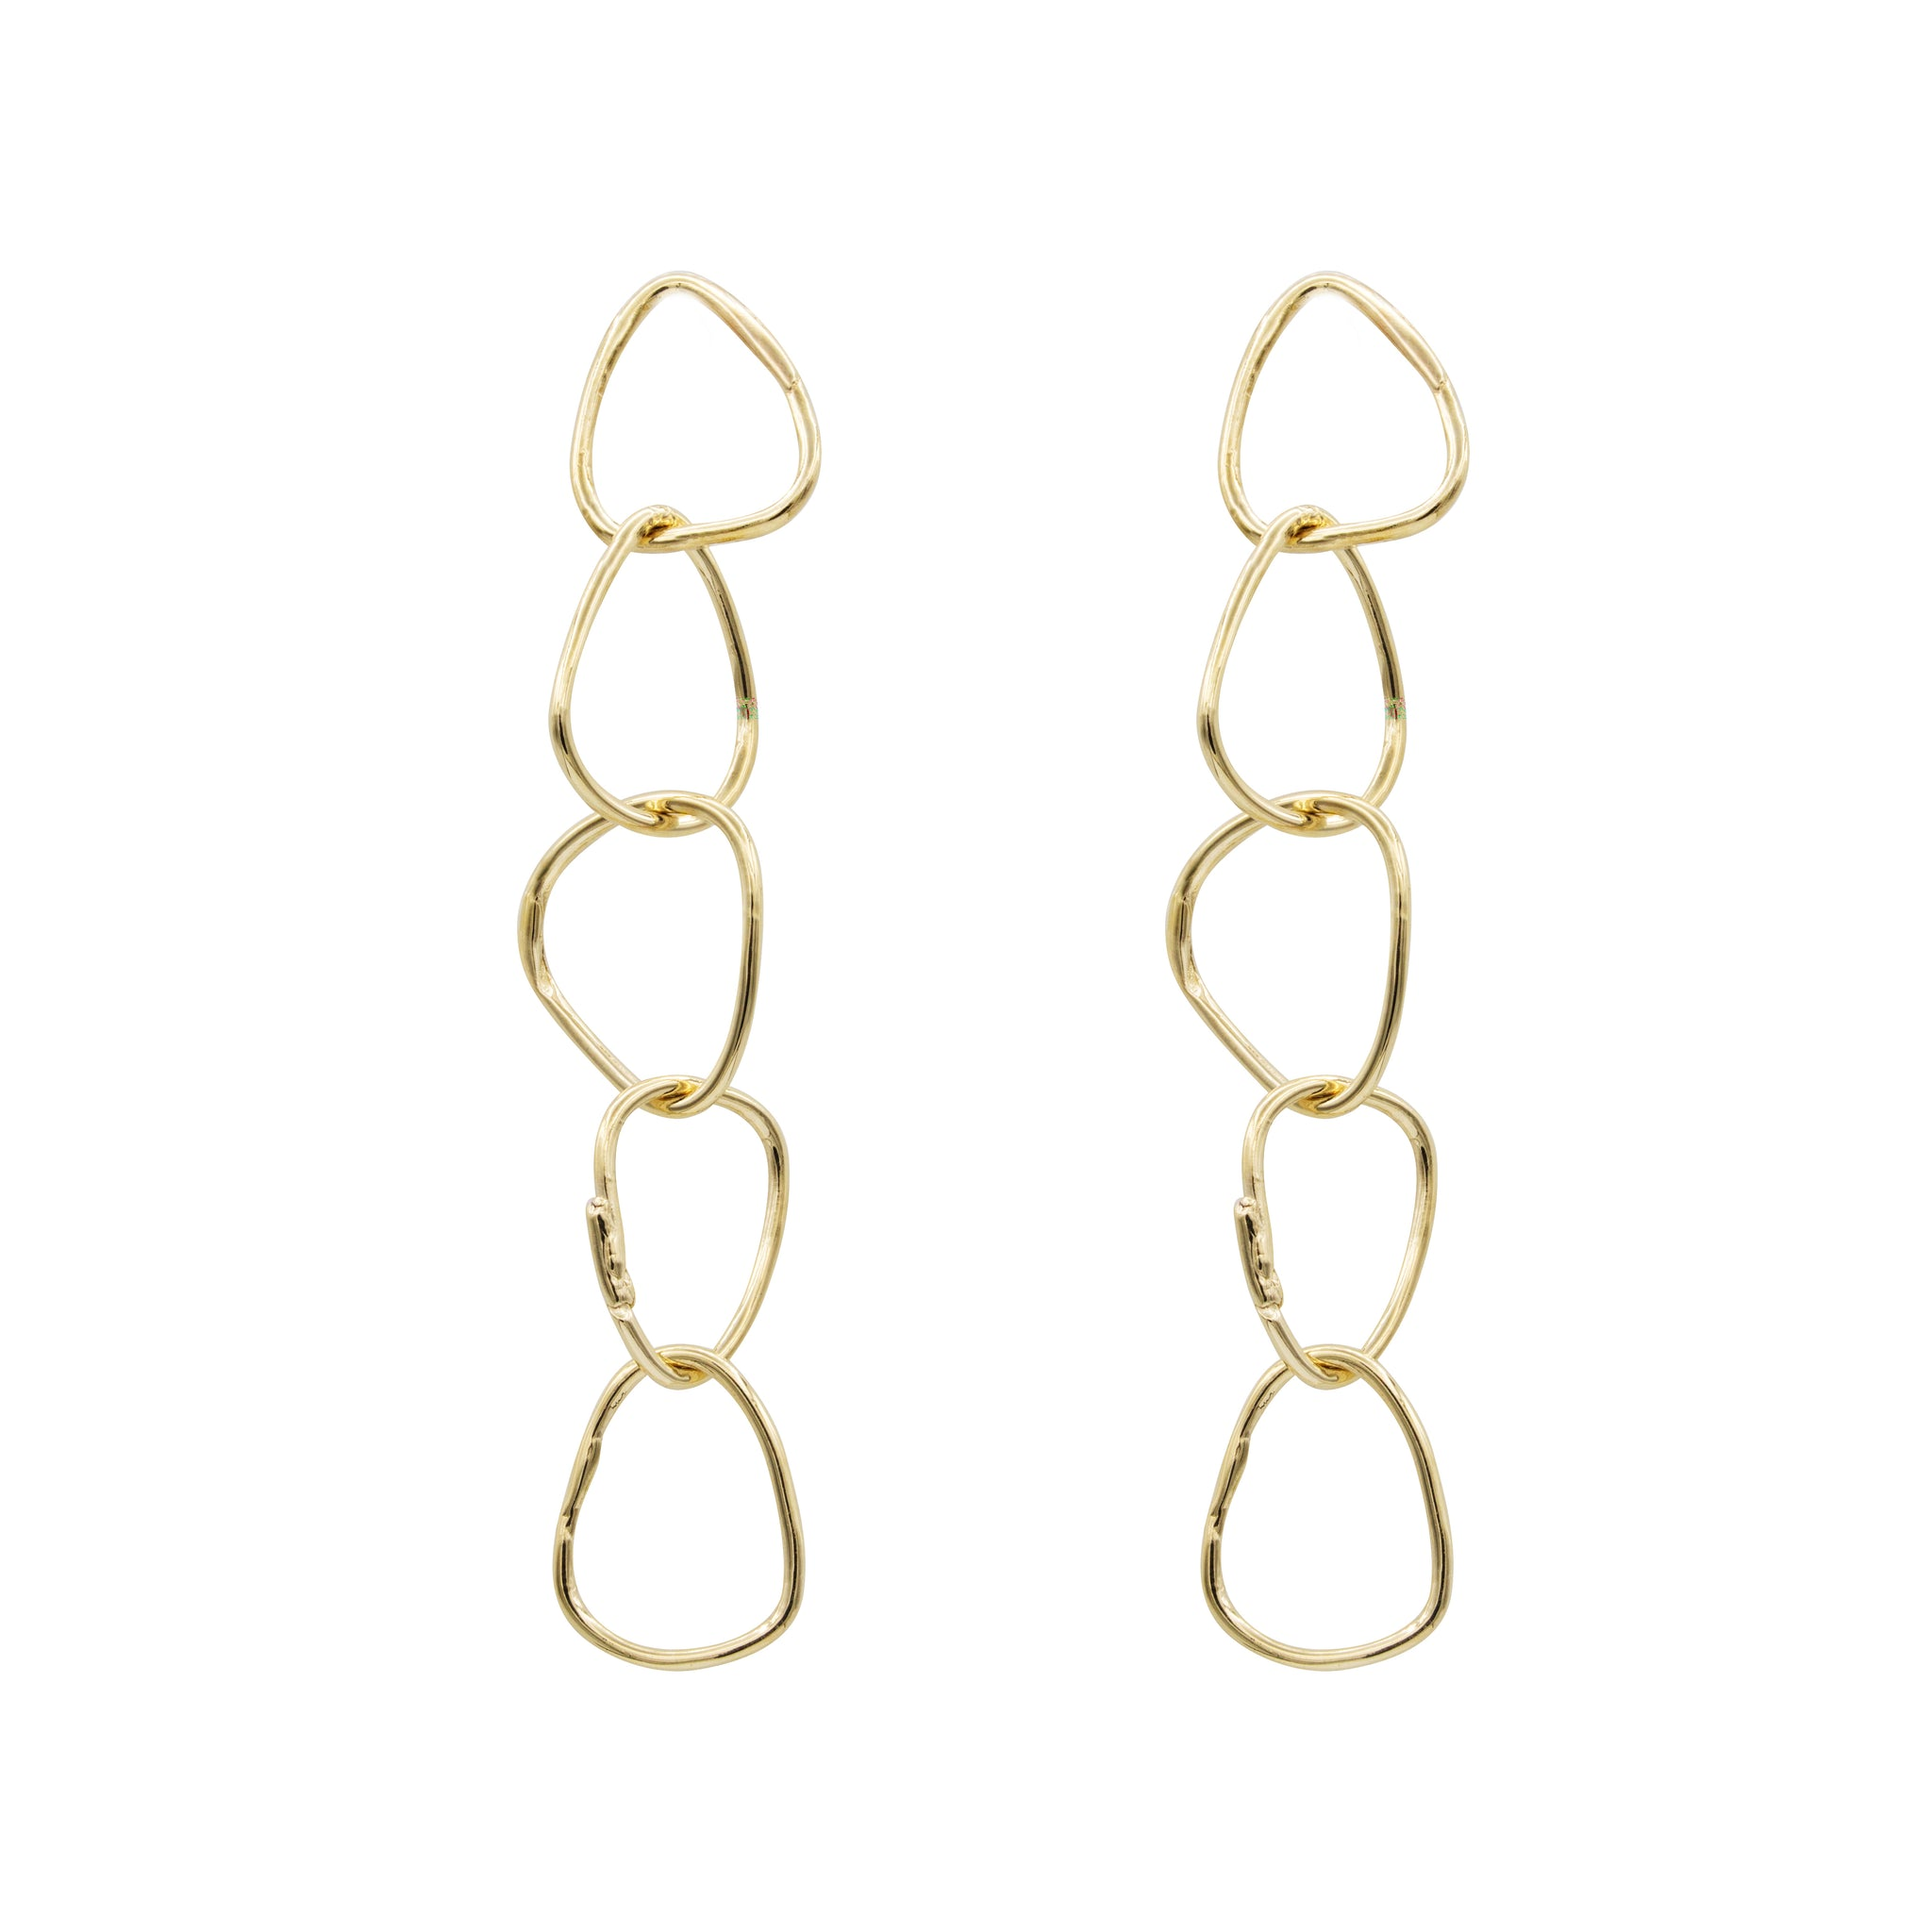 yellow gold hoop drop earrings statement earrings handmade jewelry designer nyc